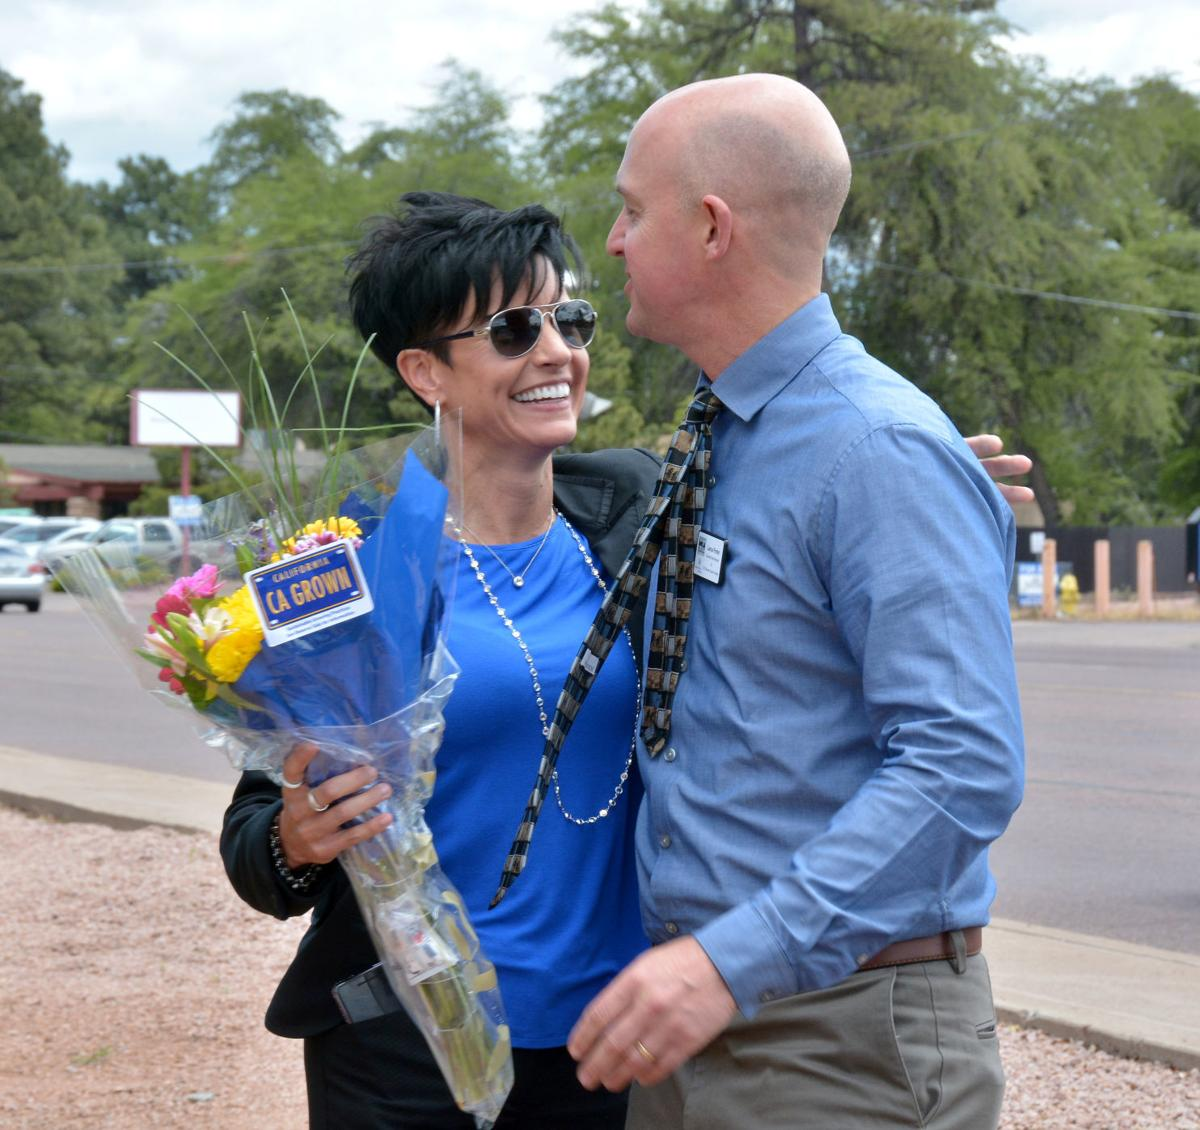 Chamber - Lance Porter gives Maia Crespin flowers on work anniversary